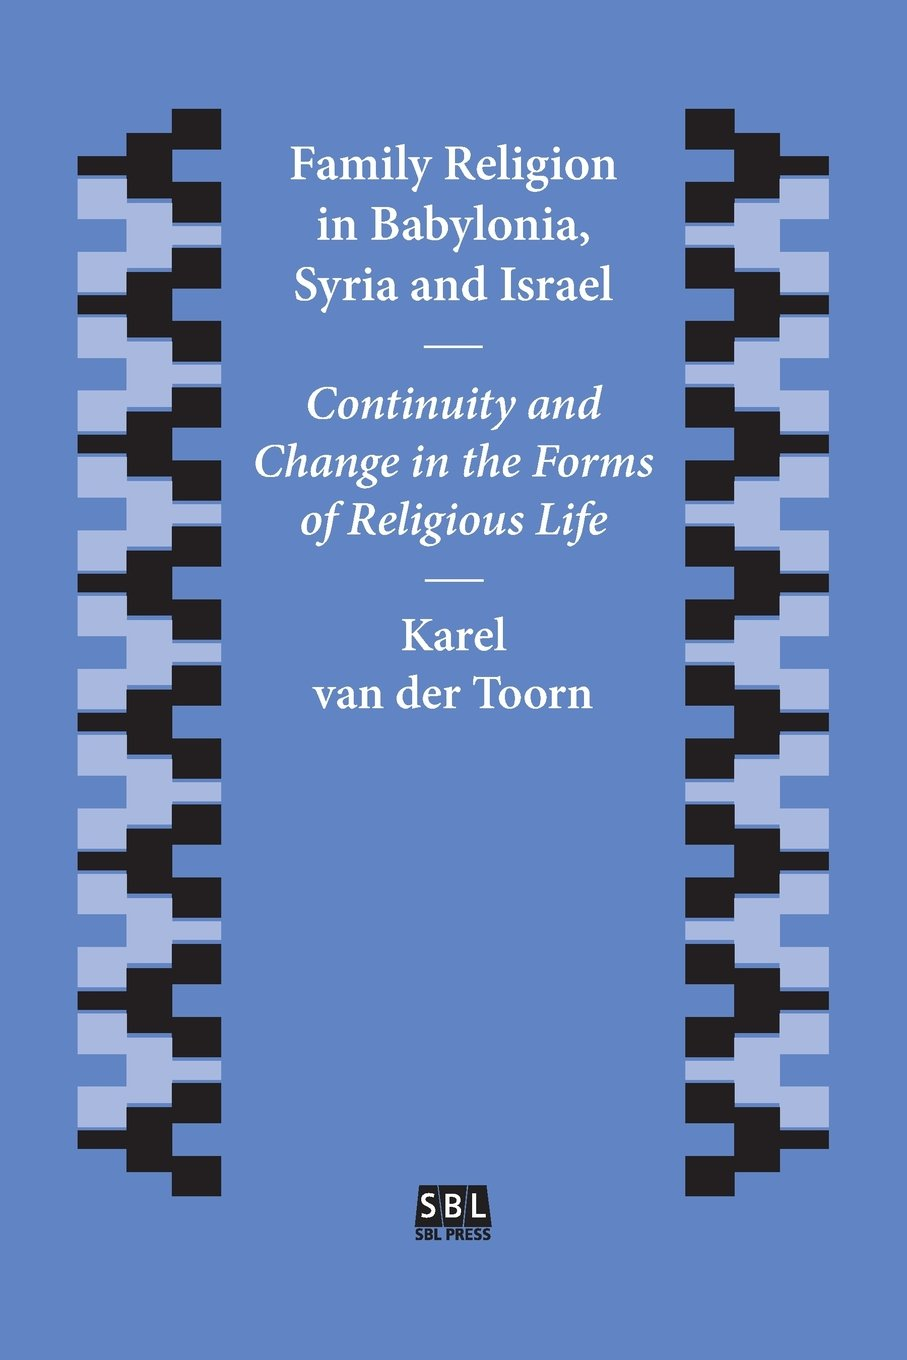 Family Religion in Babylonia, Syria and Israel: Continuity and Change in the Forms of Religious Life